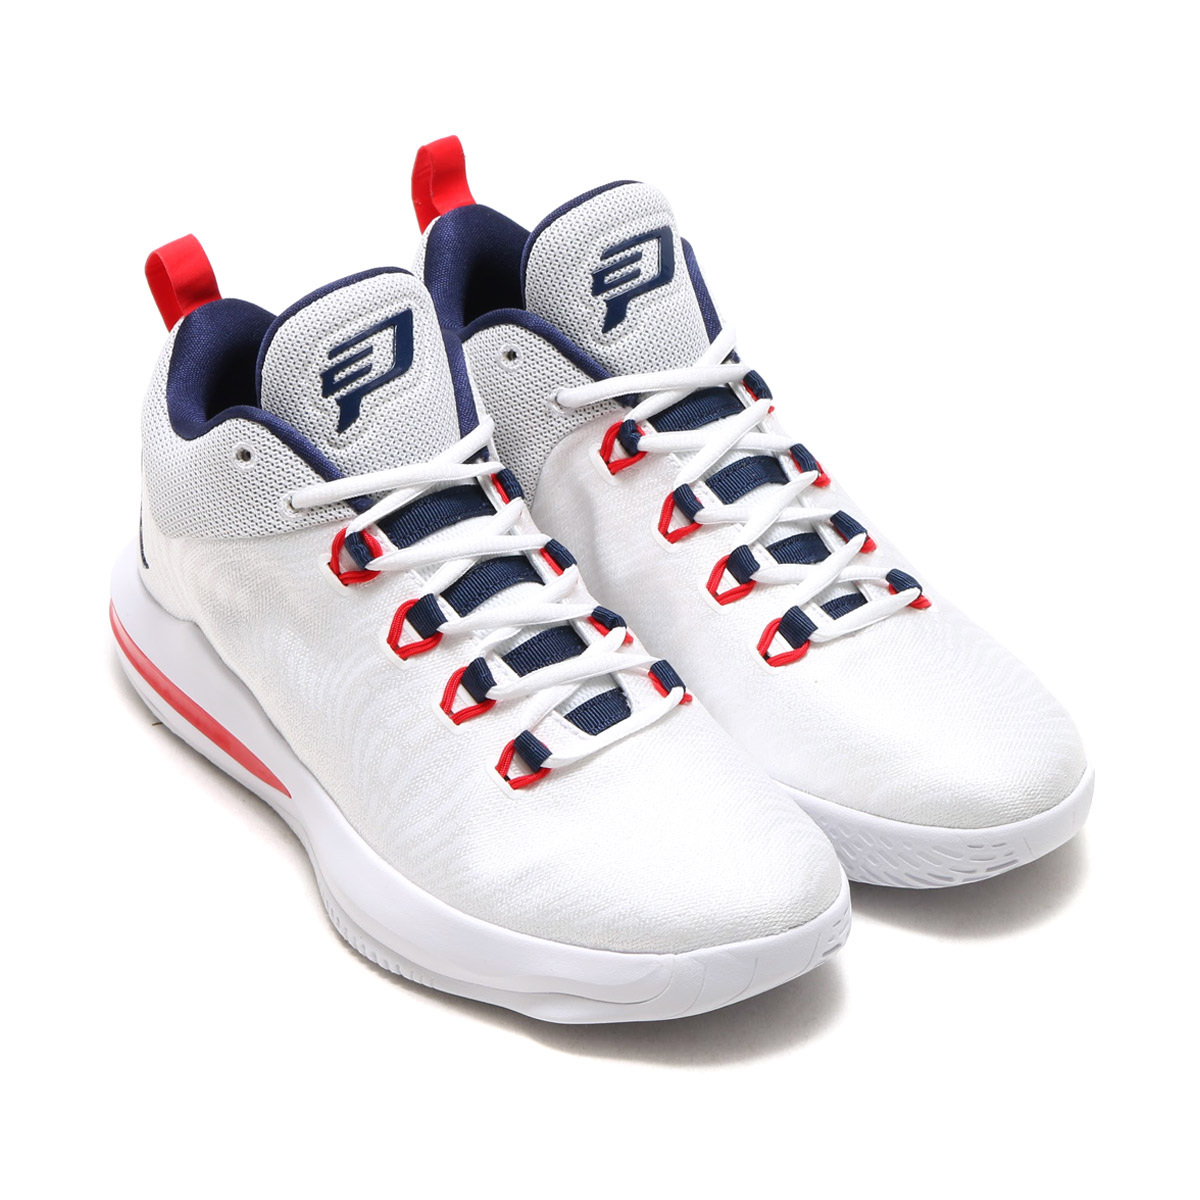 X AE (Nike Jordan CP3.X AE) WHITE MIDNIGHT NAVY-UNIVERSITY RED 17FA-I af79cb54e